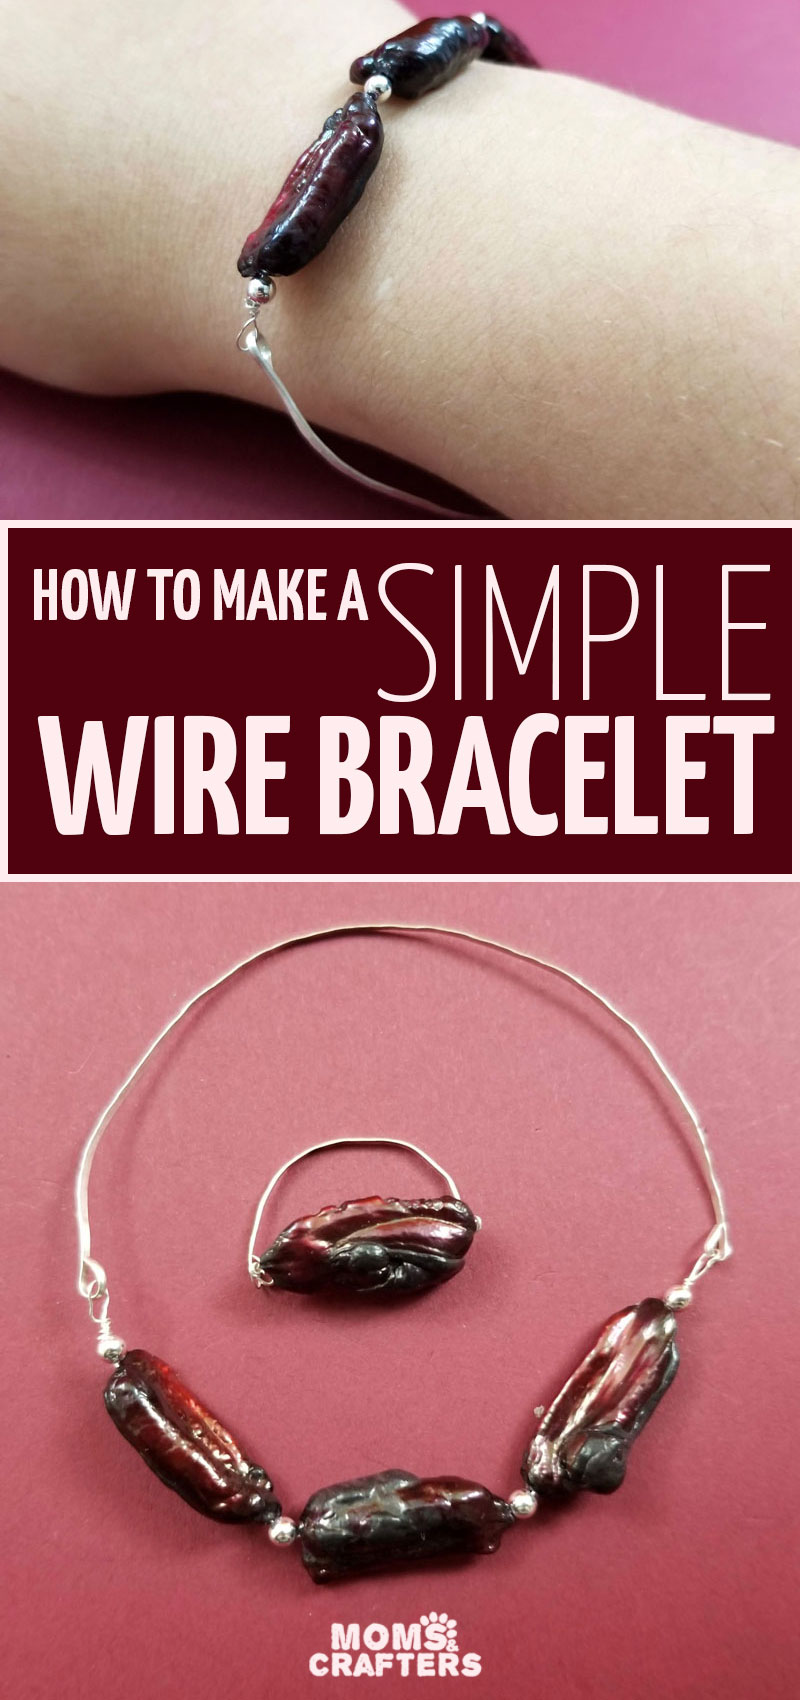 Click for a super simple and elegant wire bracelet DIY tutorial! This easy wire wrapped bangle bracelet is fun for stackign or wearing alone and is a cool jewelry making project for beginners.